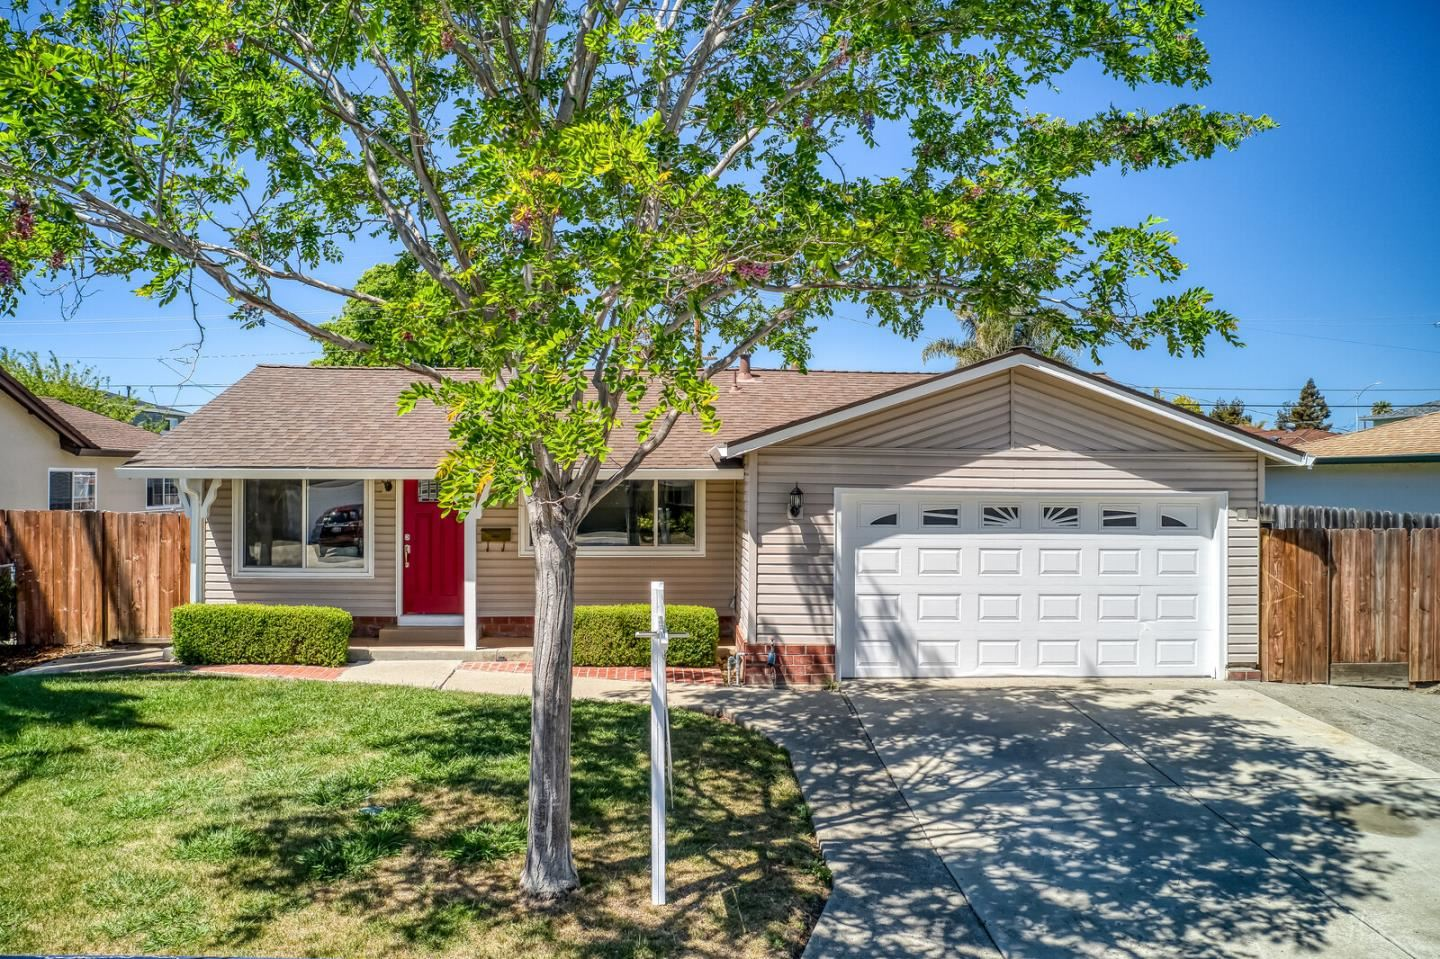 Photo for 801 Coyote Street, MILPITAS, CA 95035 (MLS # ML81841147)